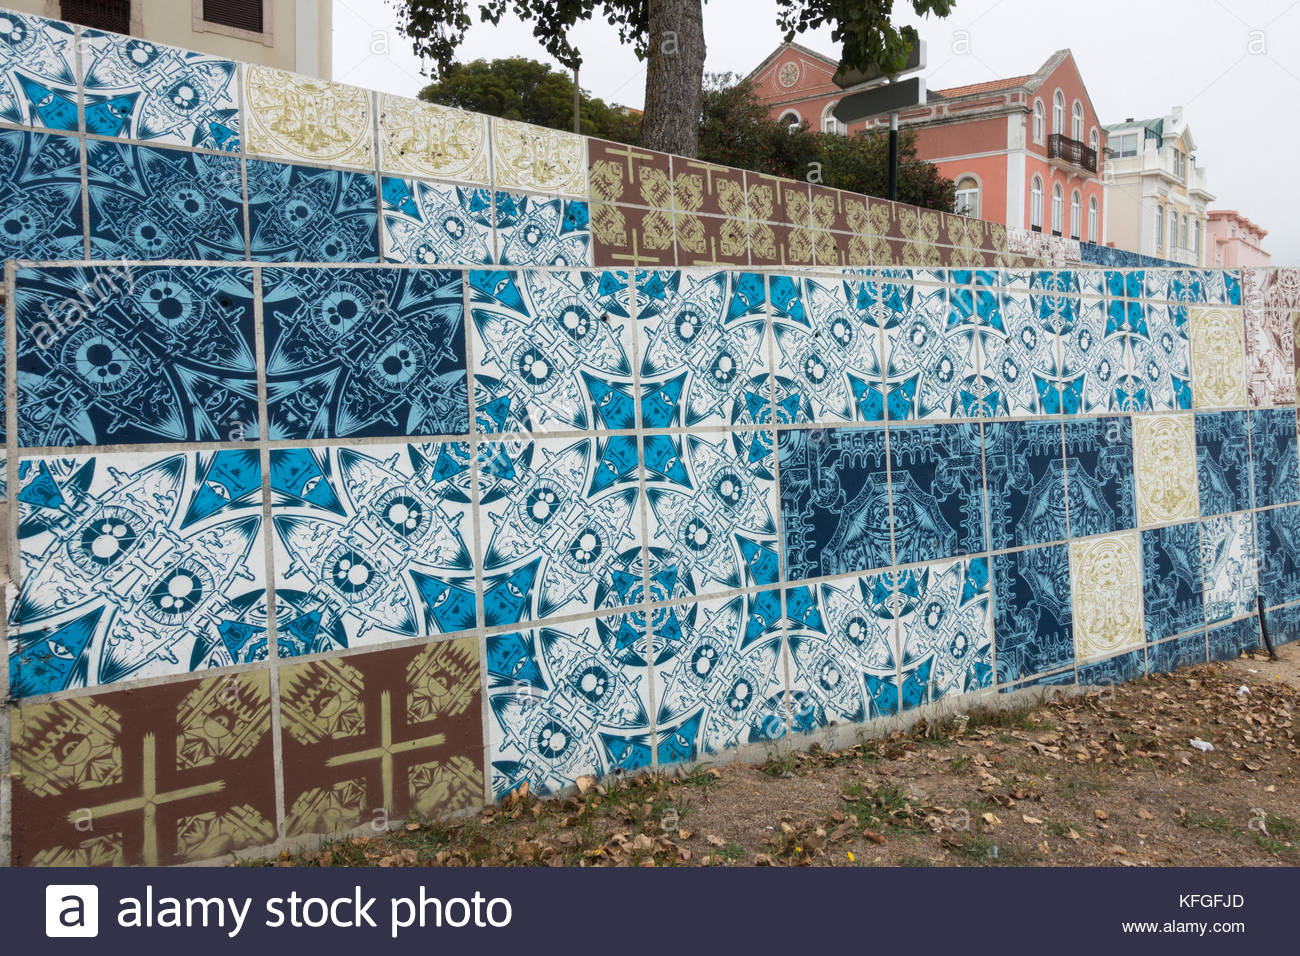 Patterned Tiles Stock Photos & Patterned Tiles Stock Images - Alamy